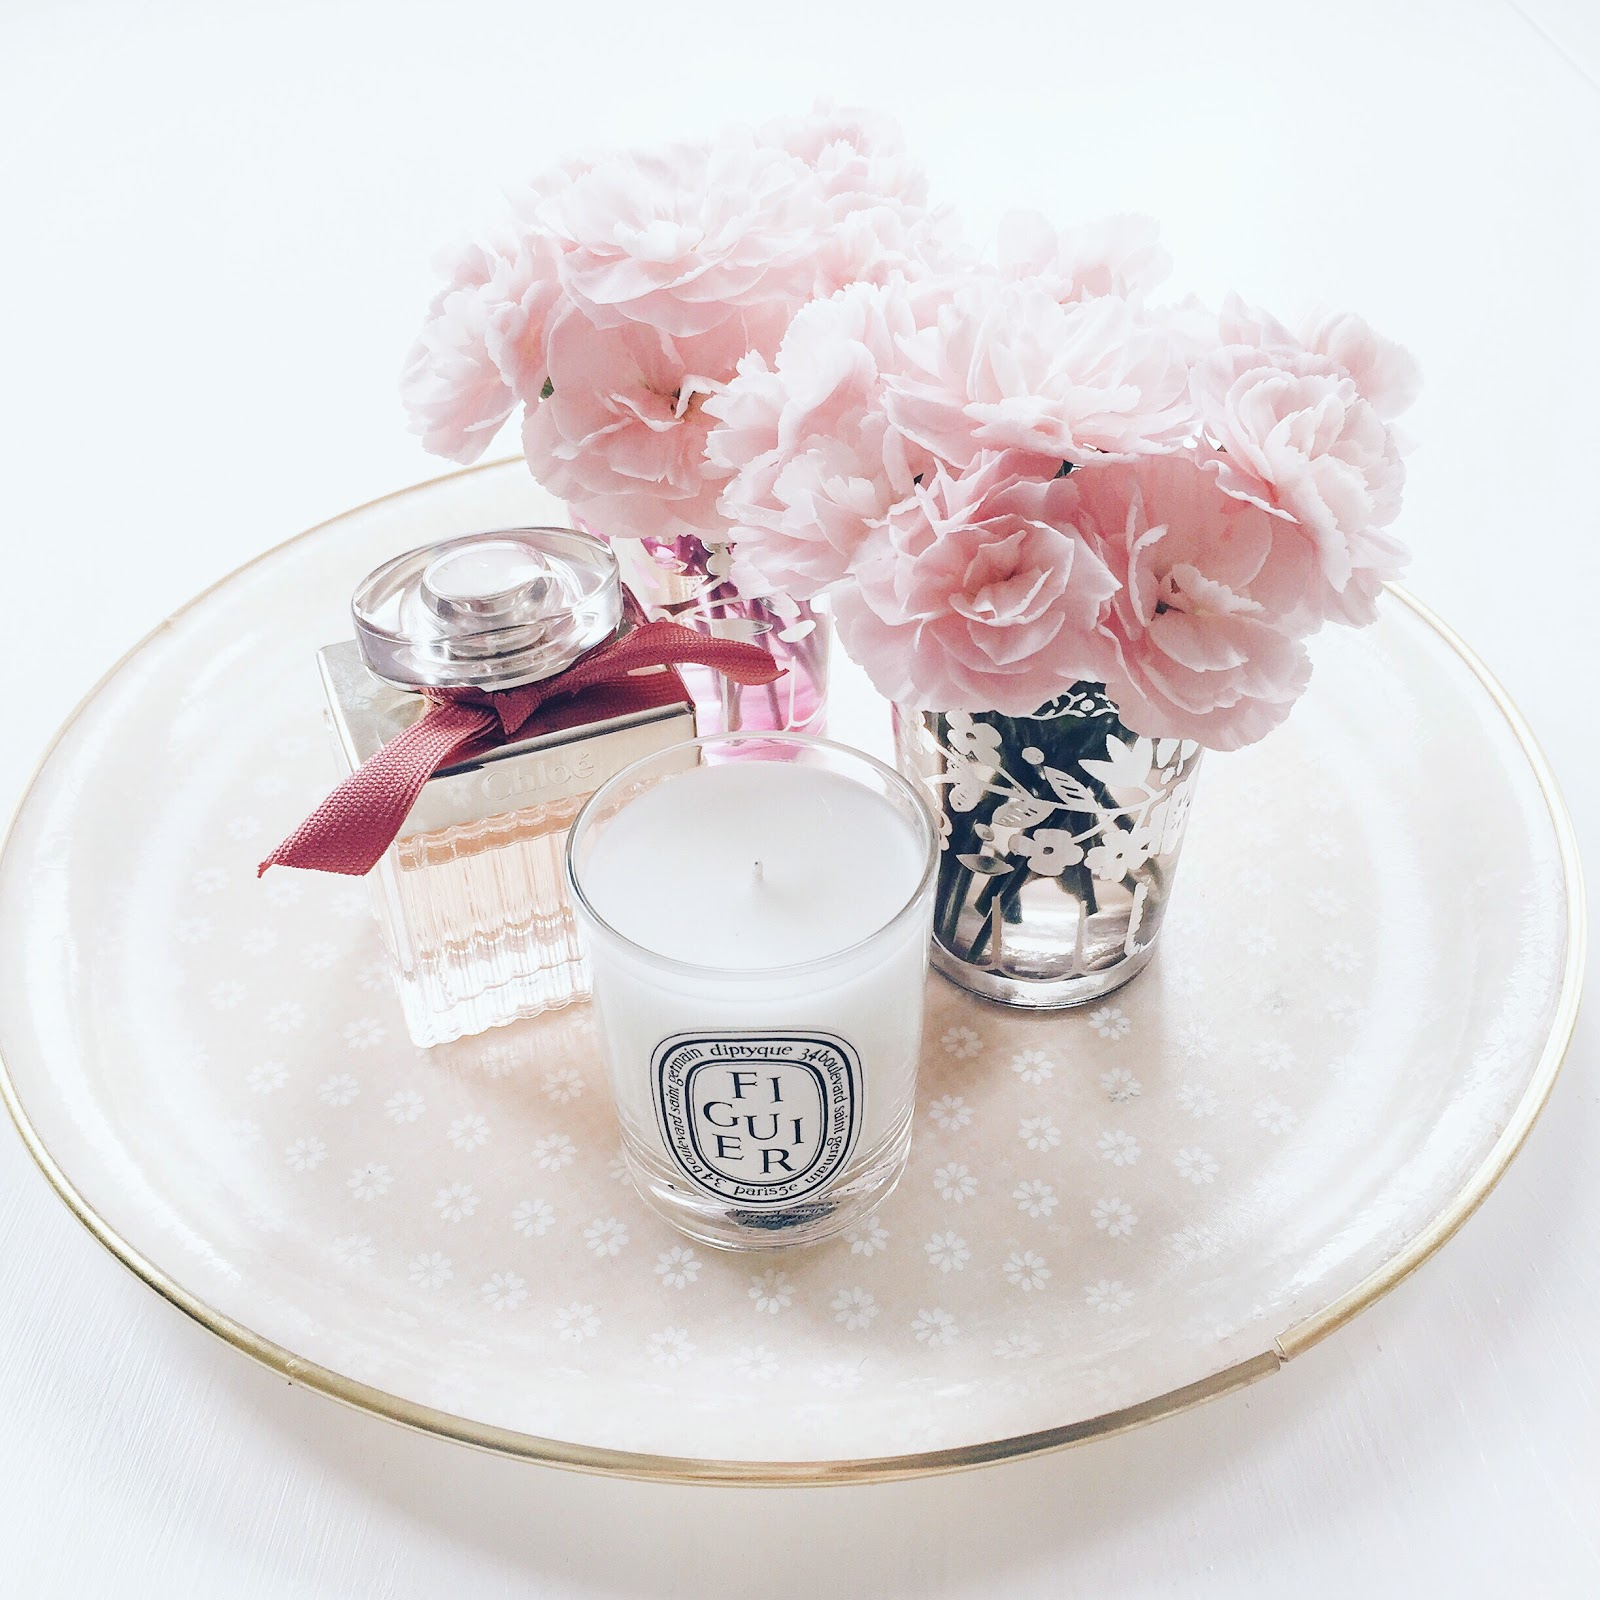 diptique candles